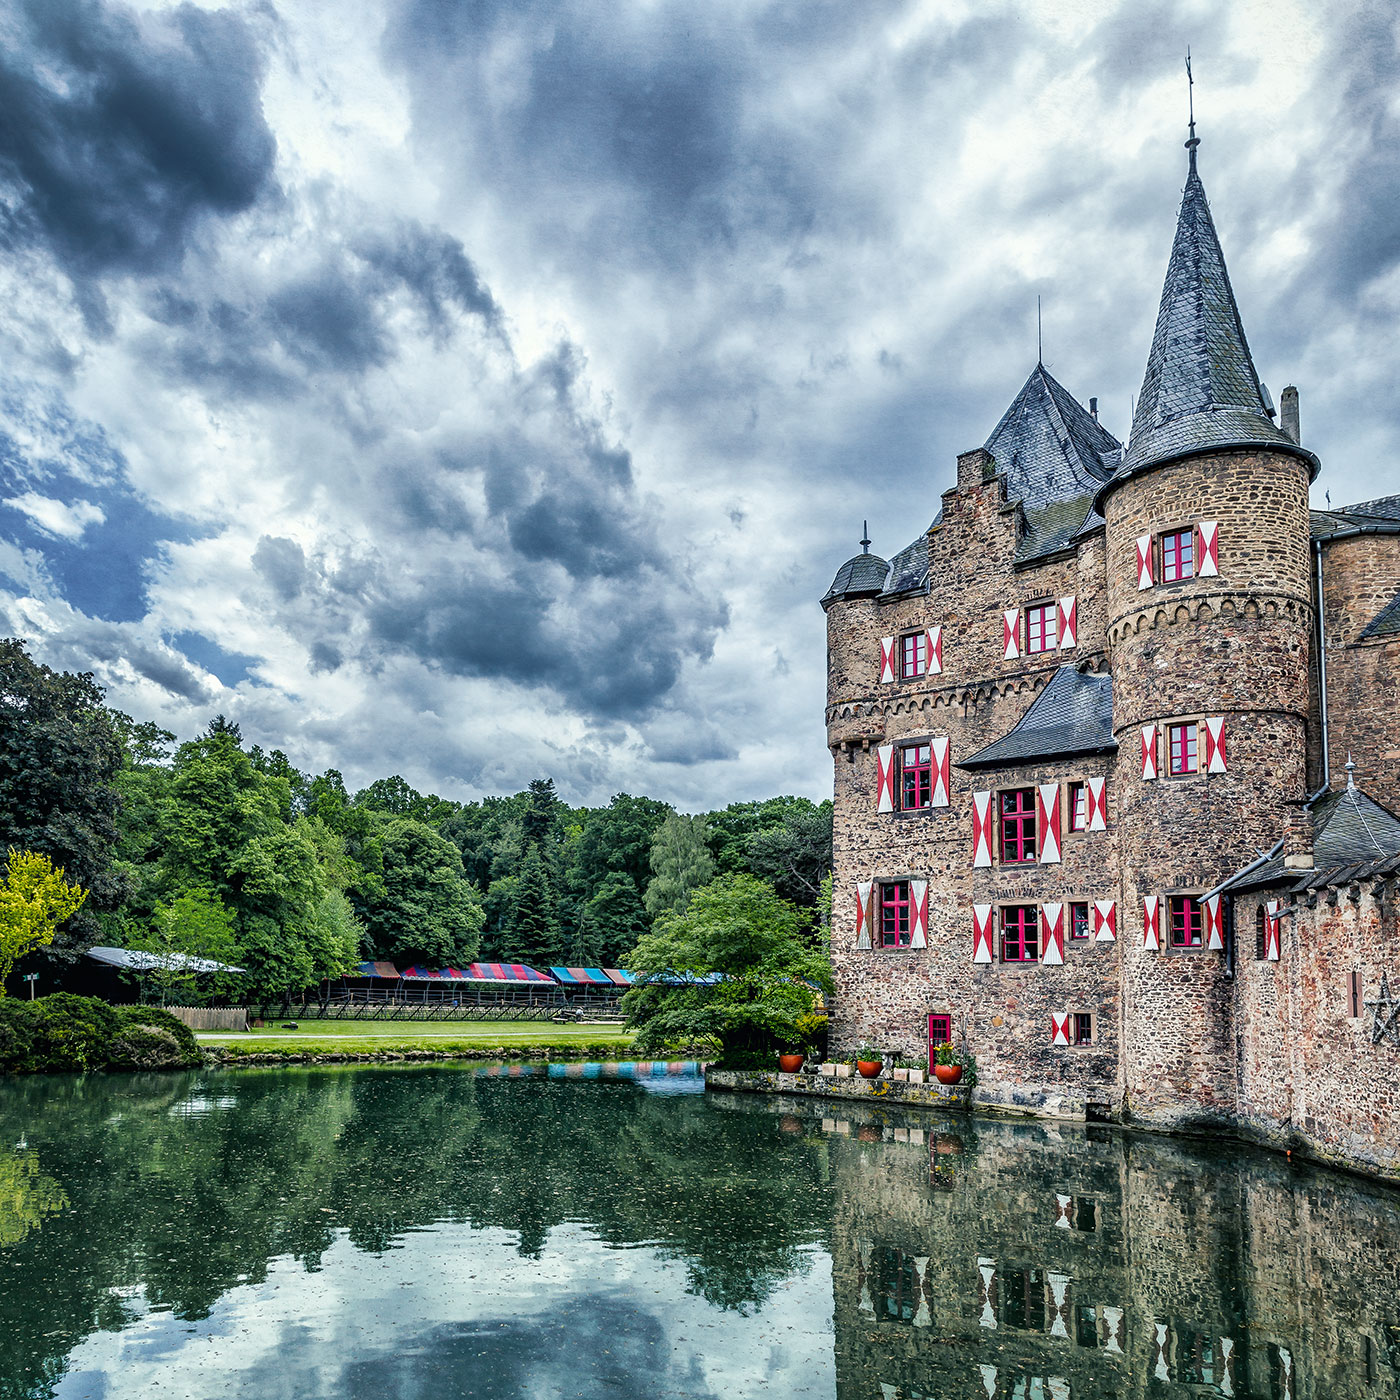 Castle of Satzvey, Germany